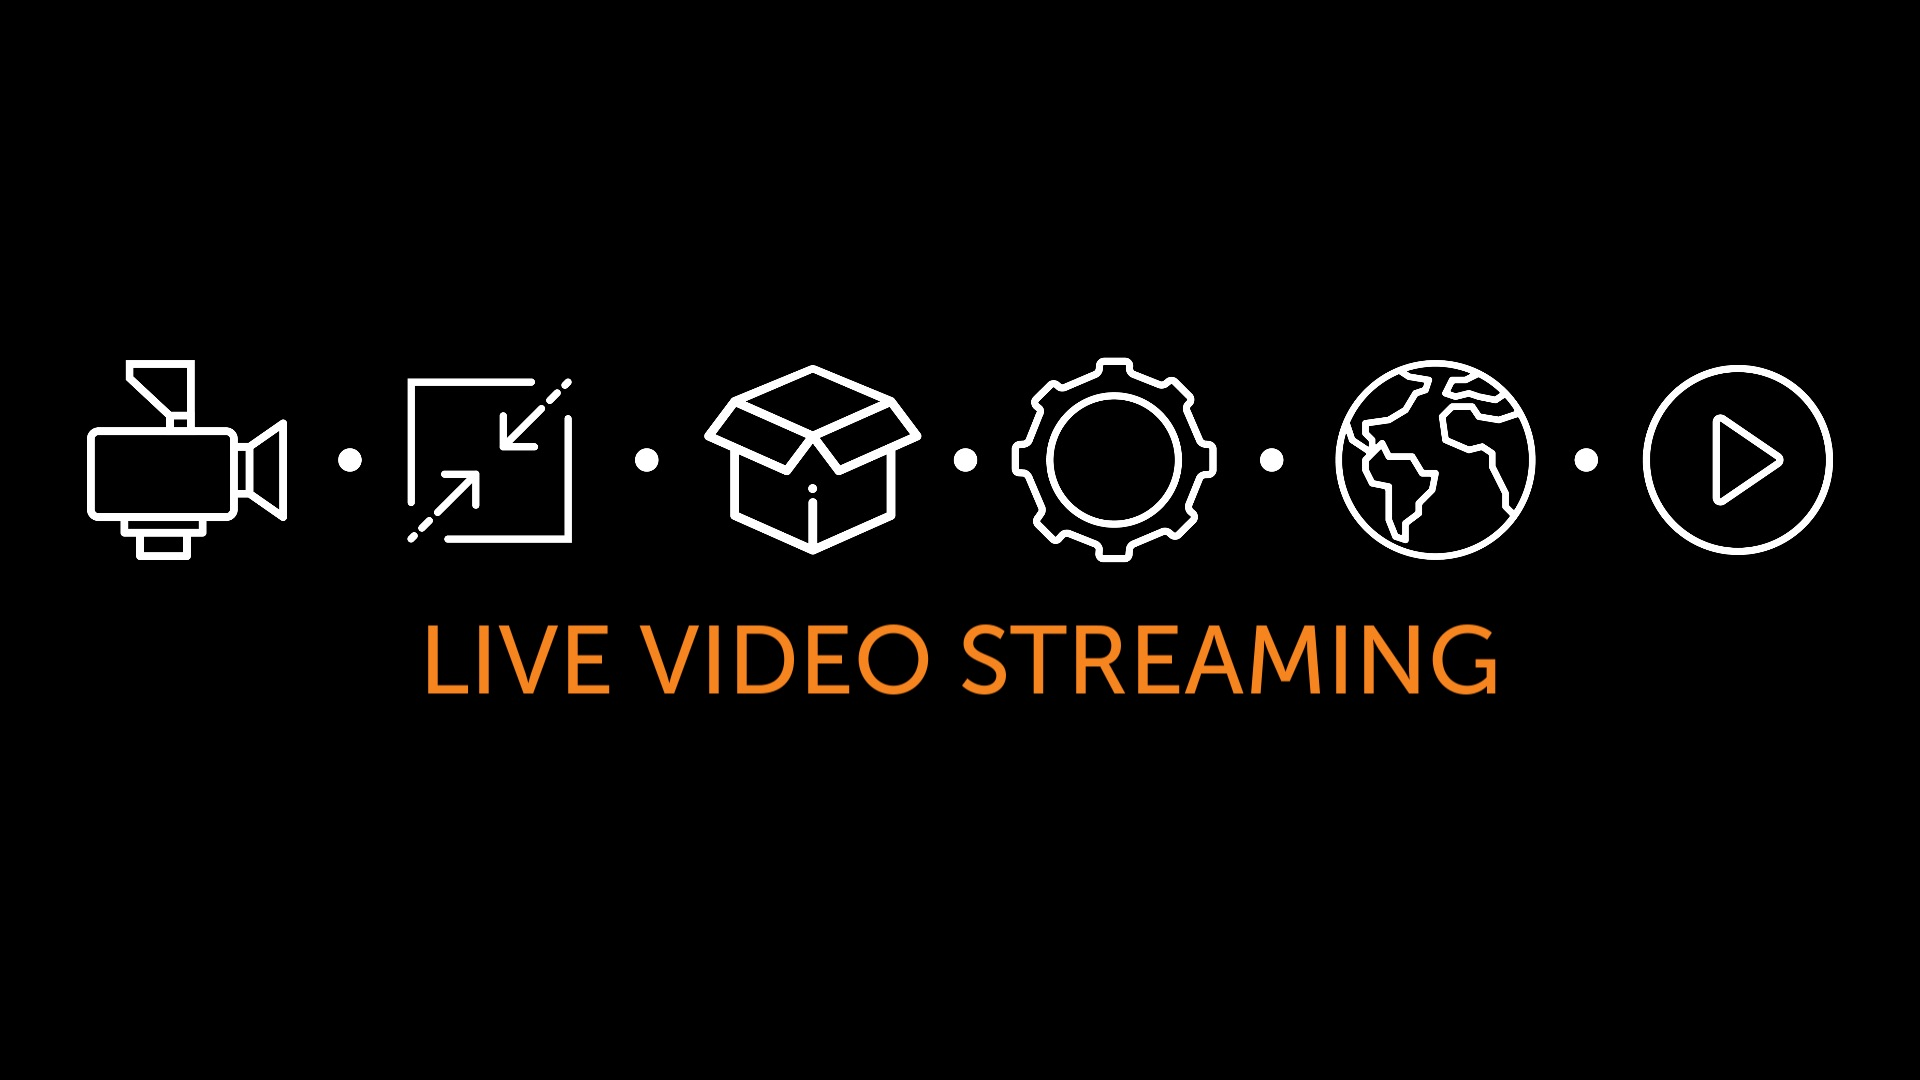 Professional Live Video Streaming Software by Wowza Media